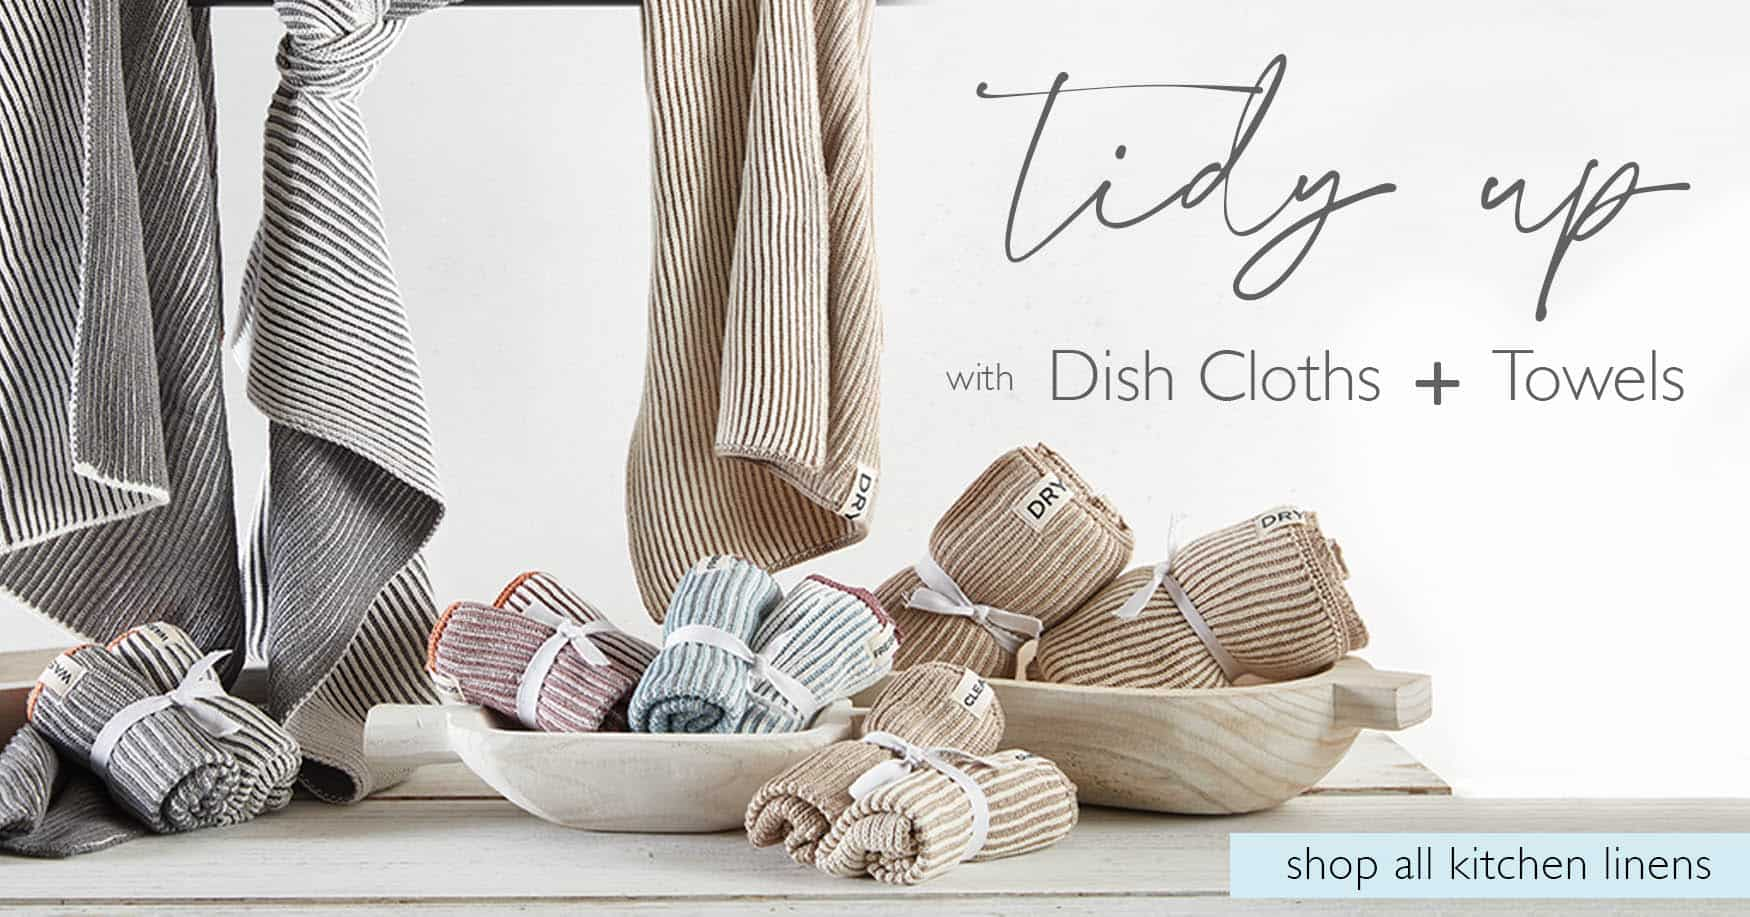 Tidy up with dish clothes + towels. Shop all kitchen linens